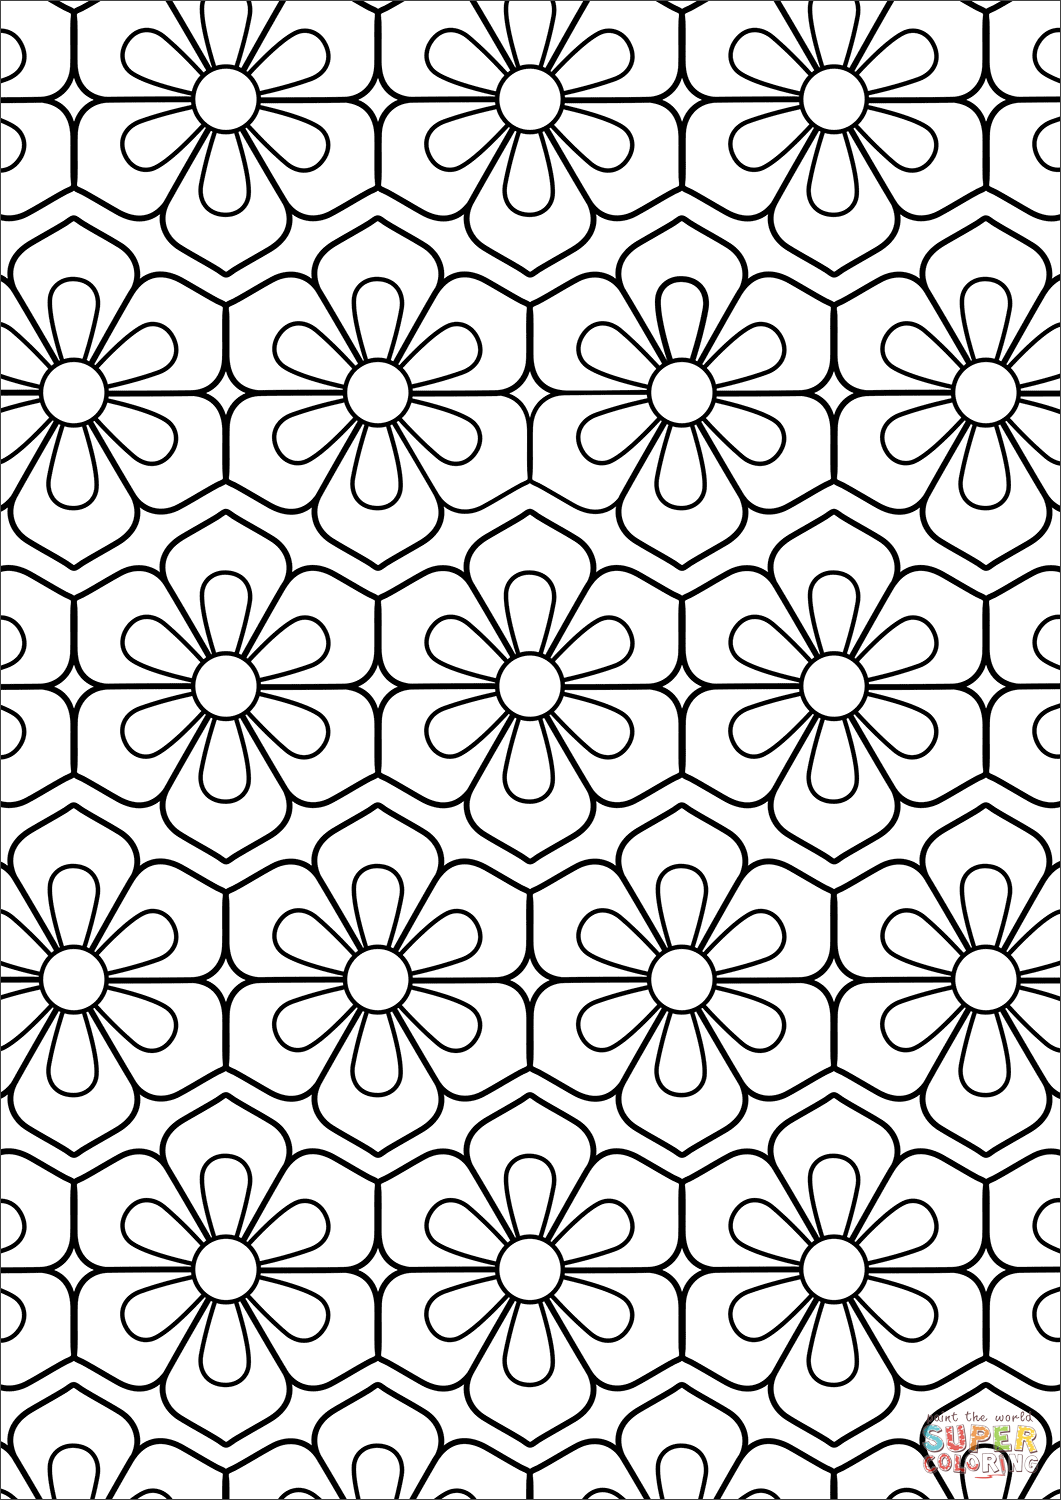 pattern coloring books flower pattern coloring page free printable coloring pages pattern books coloring